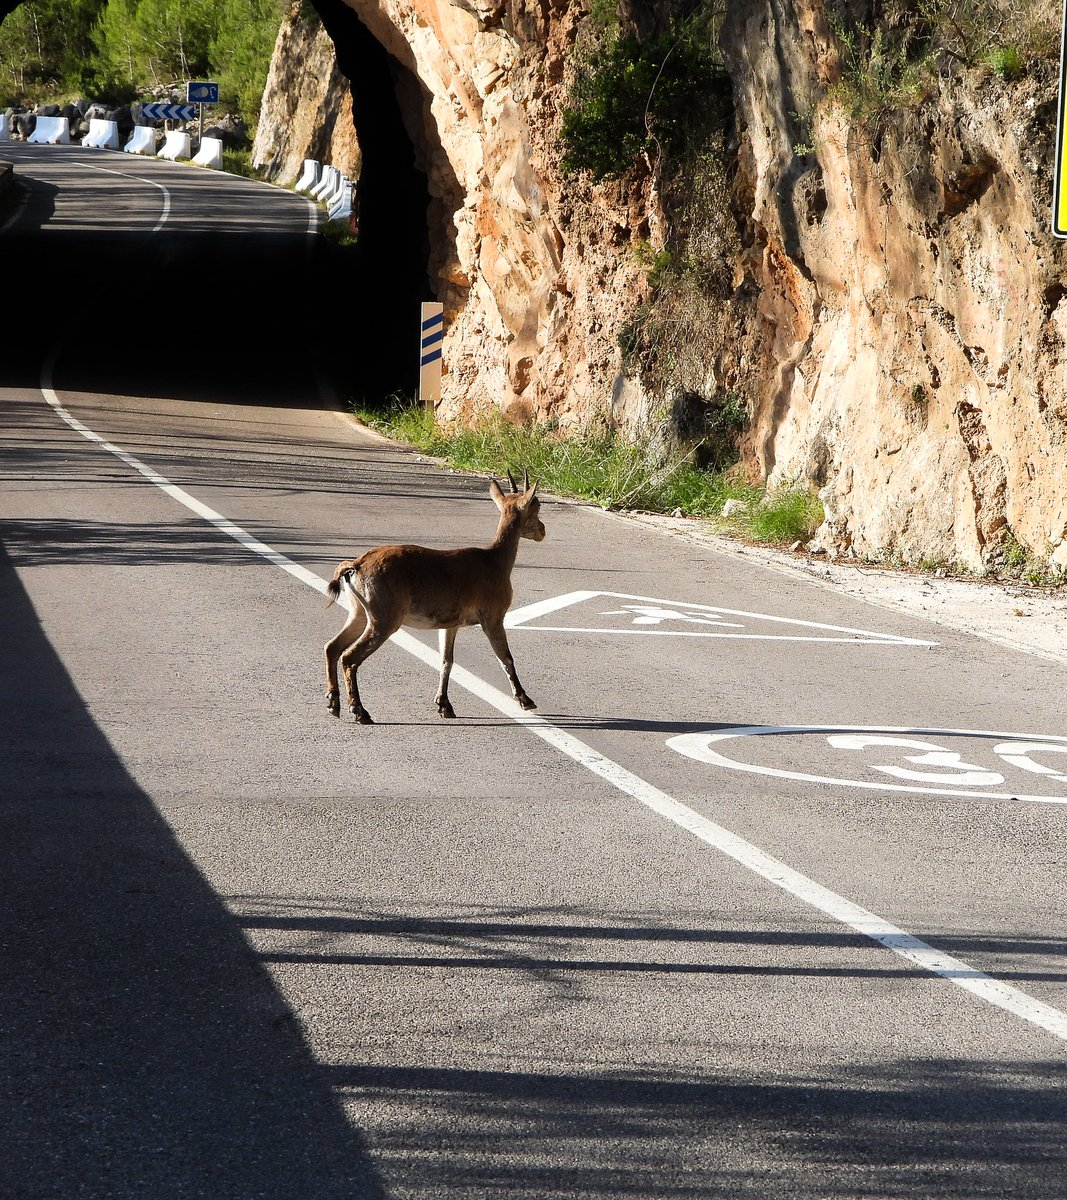 #fauna #deer #tunel #AnimalCrossing #landscapelovers ..deer crossing with no problem...no people molesting pic.twitter.com/zSCUedwNsy  by mario